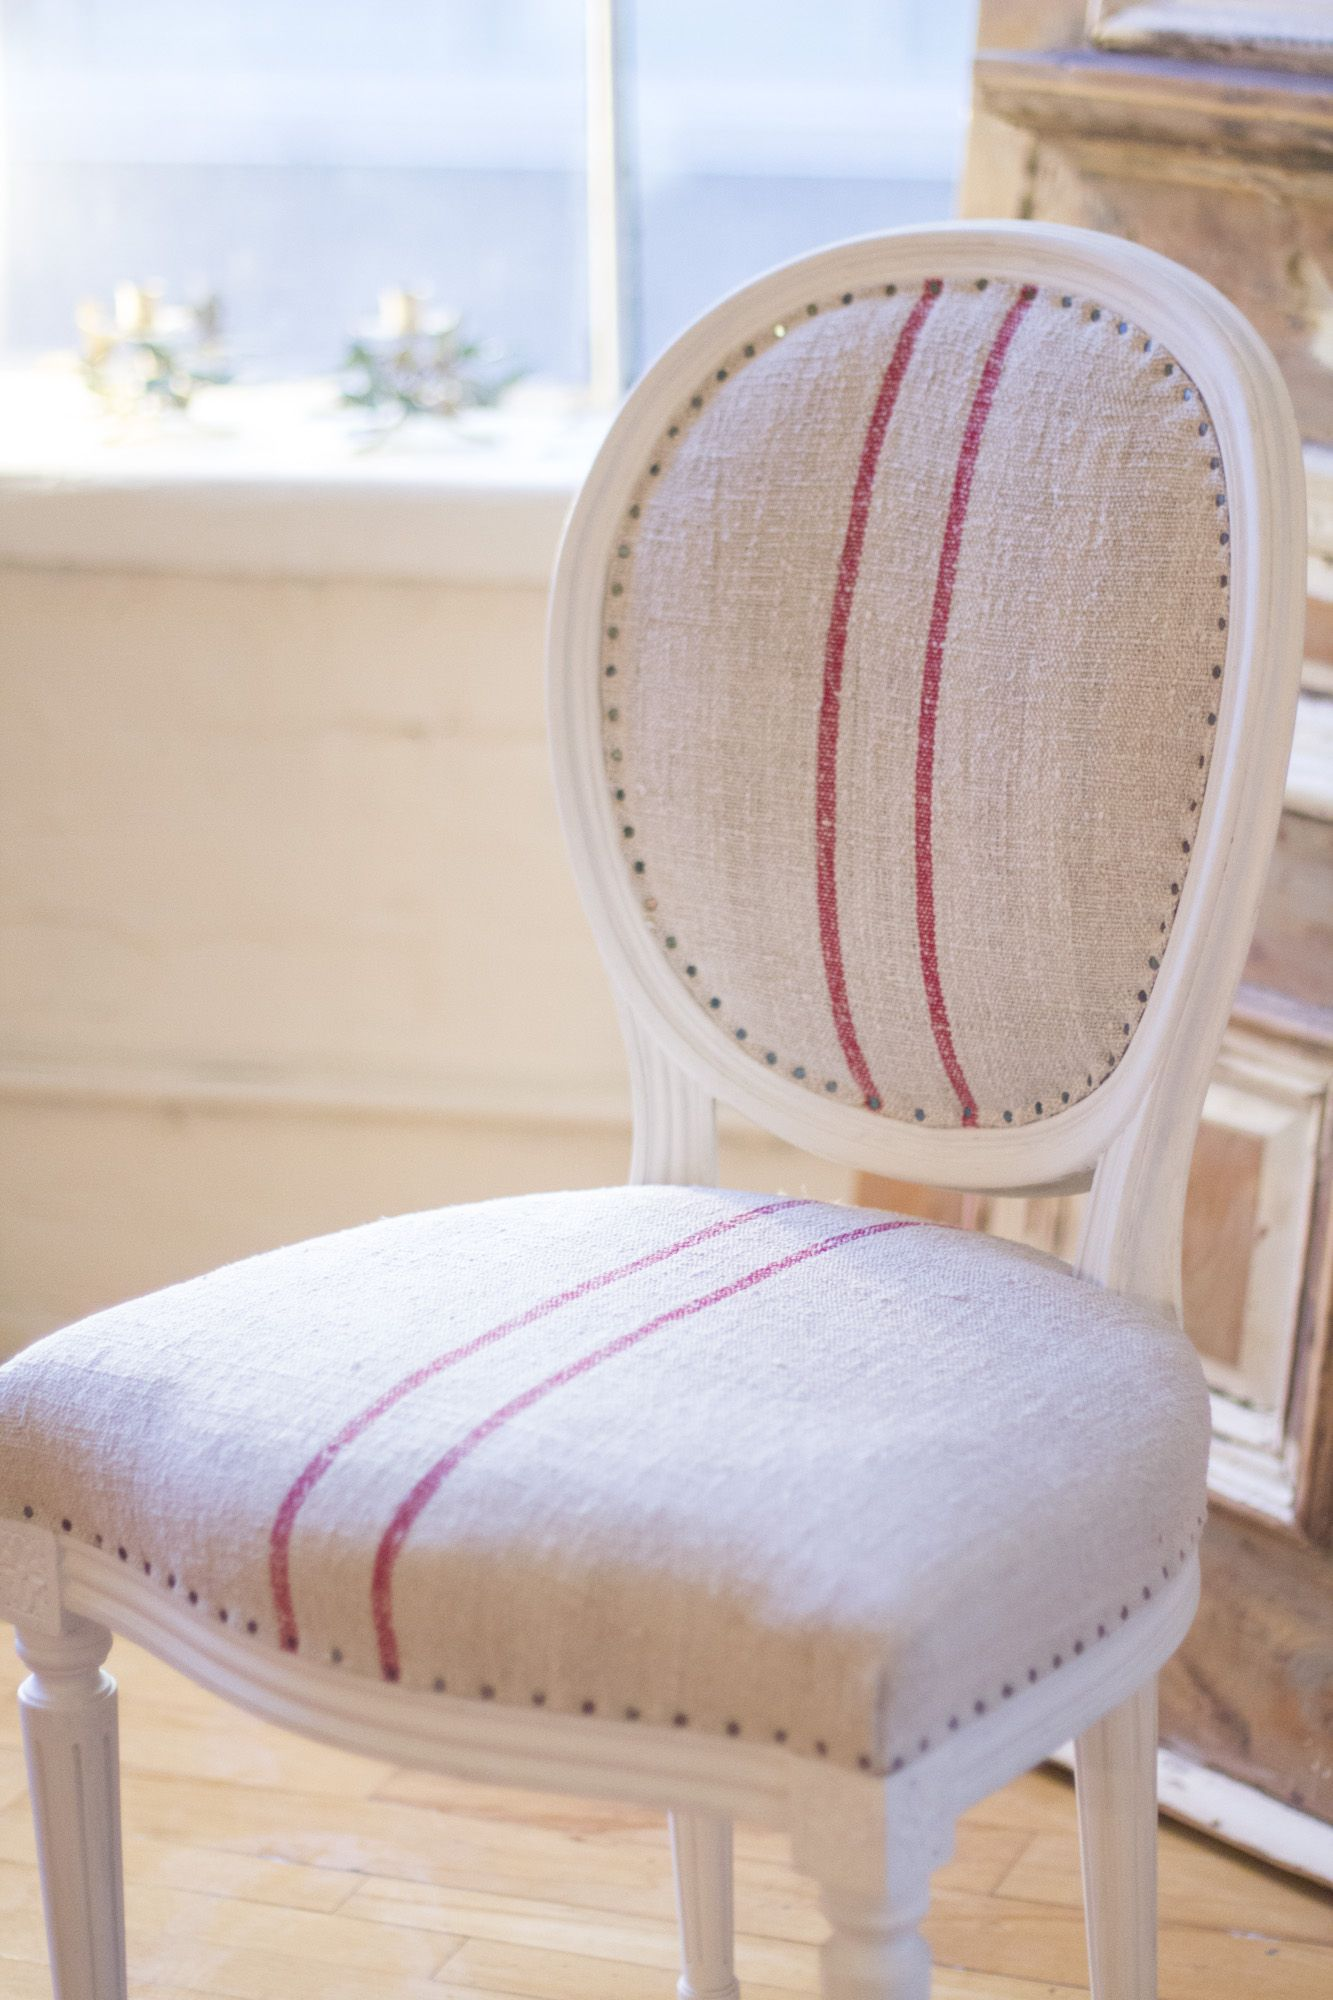 Inspiration in White: Red and White Linen | Sillas, Tela y Sillones